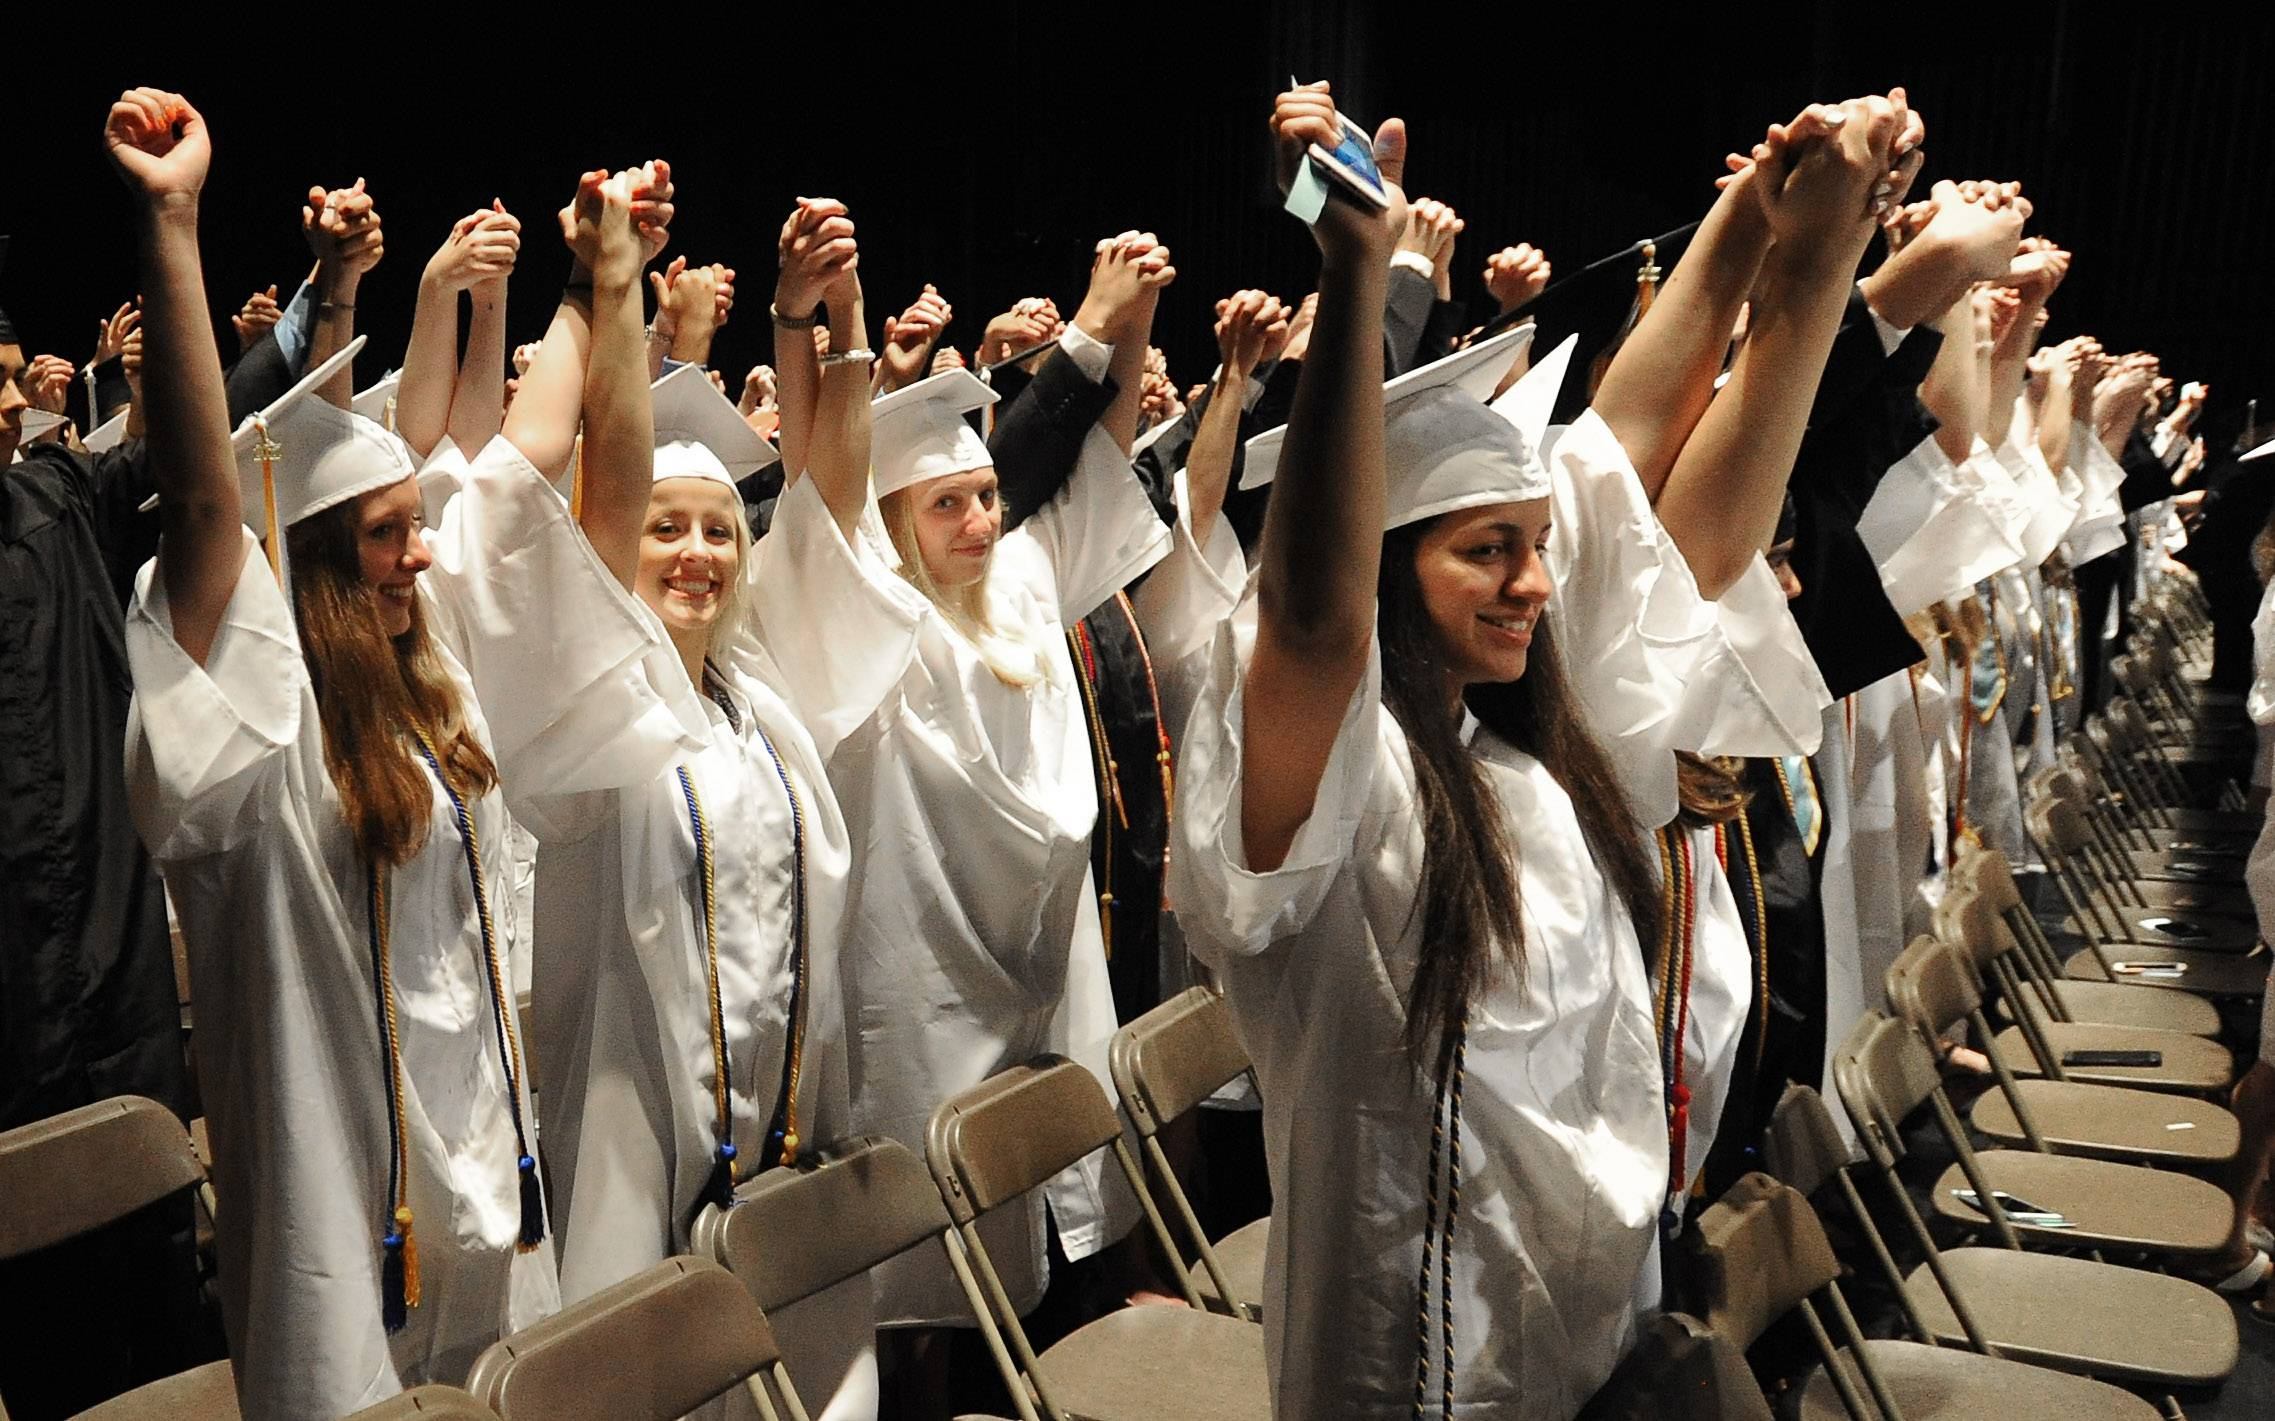 Maine West graduates of over 400 raise their hands in unity as the song Unity played at their commencement in the Rosemont Theatre on Sunday.